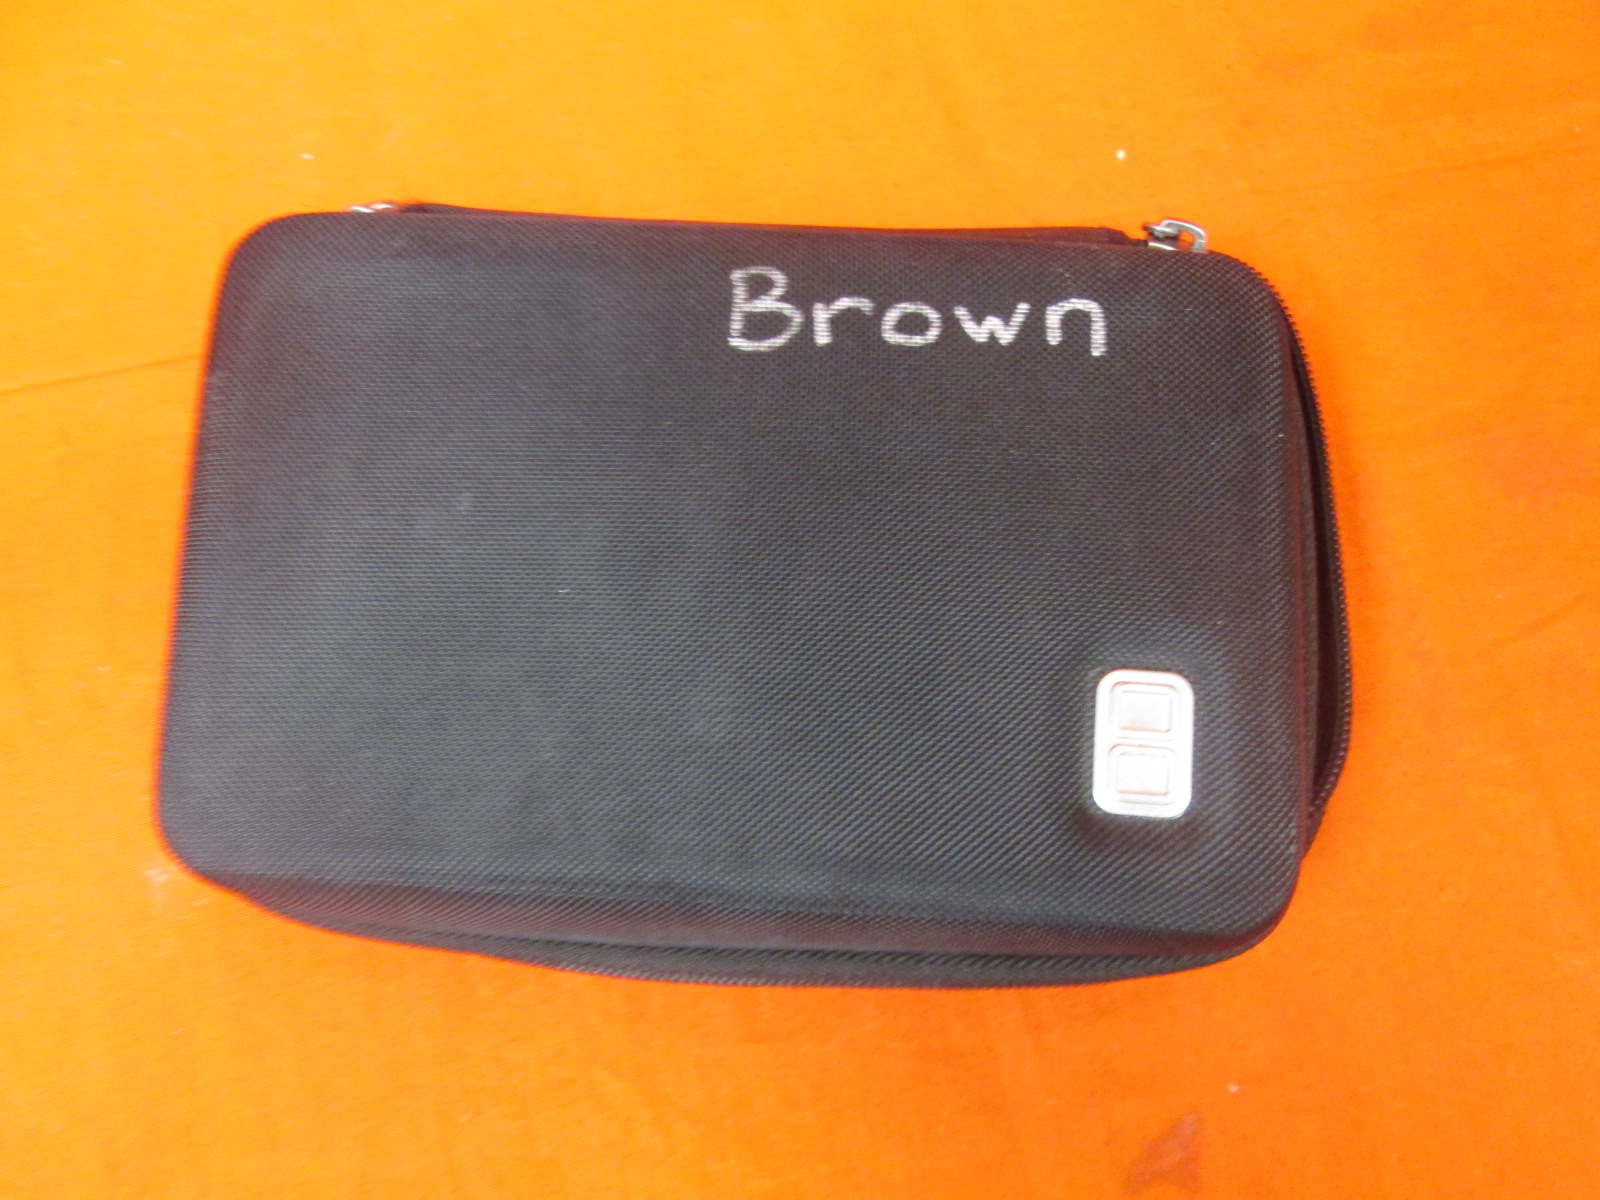 Black Hard Case For Nintendo DS